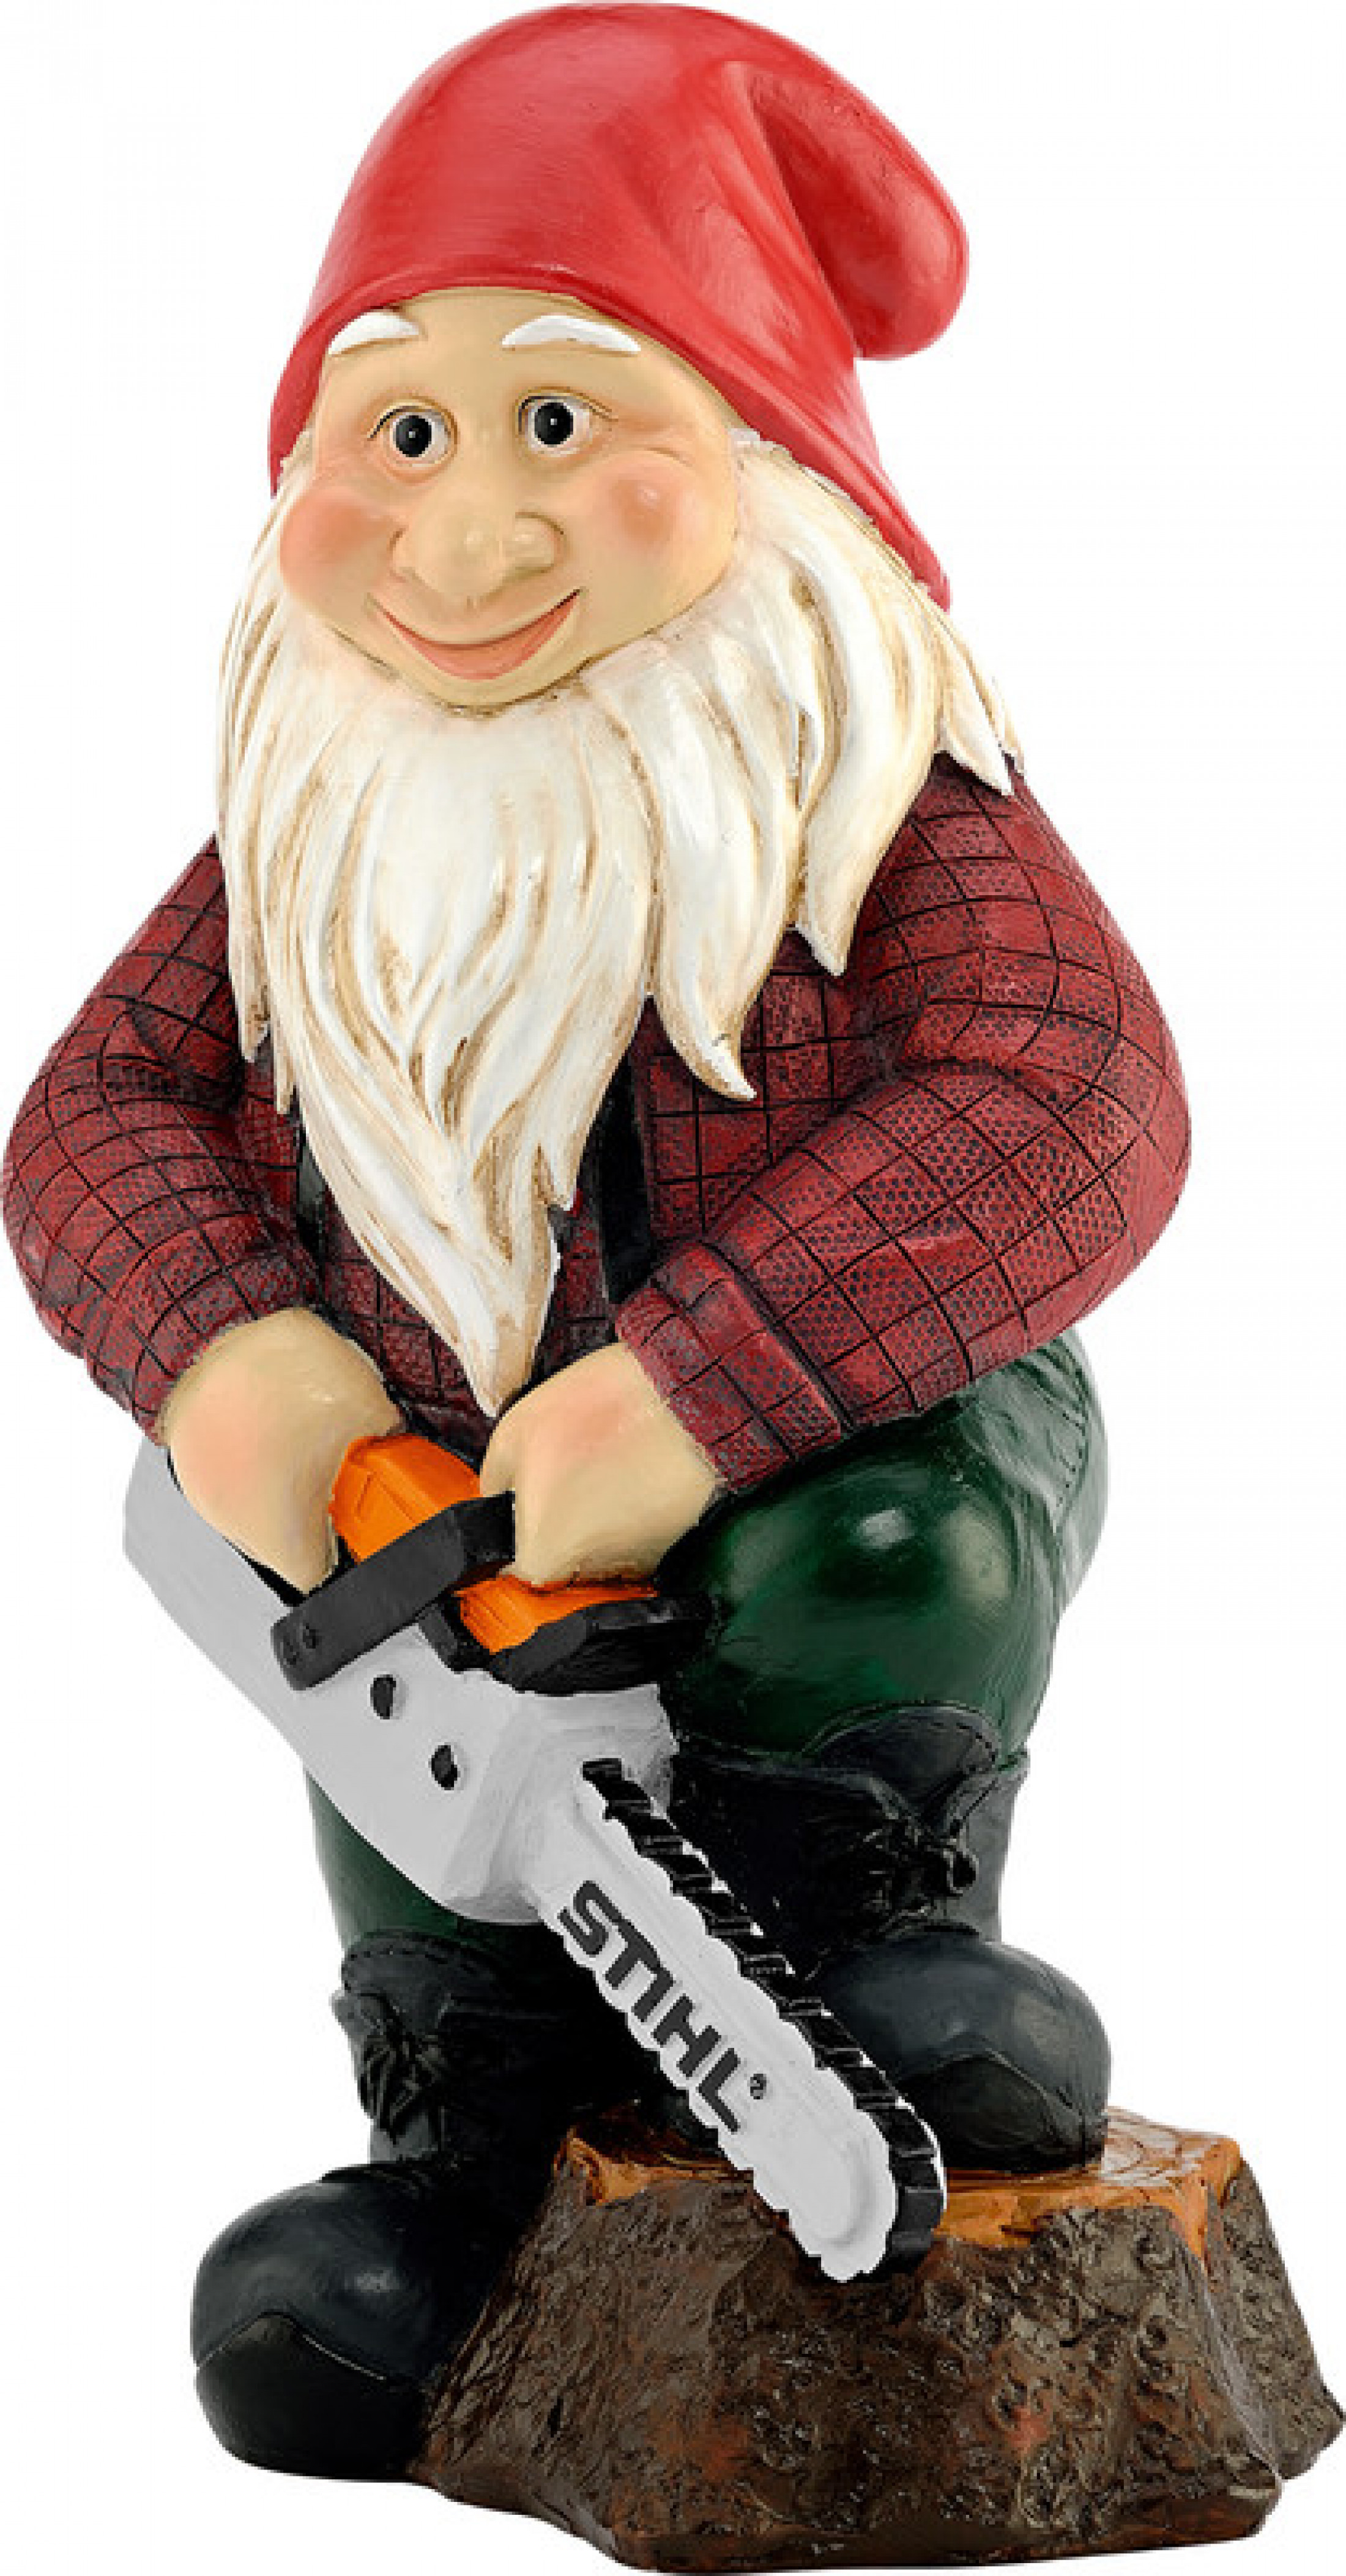 Good Time Bud Buddies Gnomes Smoking Marijuana With Light Up Leds On A Battery Timer Indoor Or Outdoor 10 Inches Tall Exhart Home Garden Decor